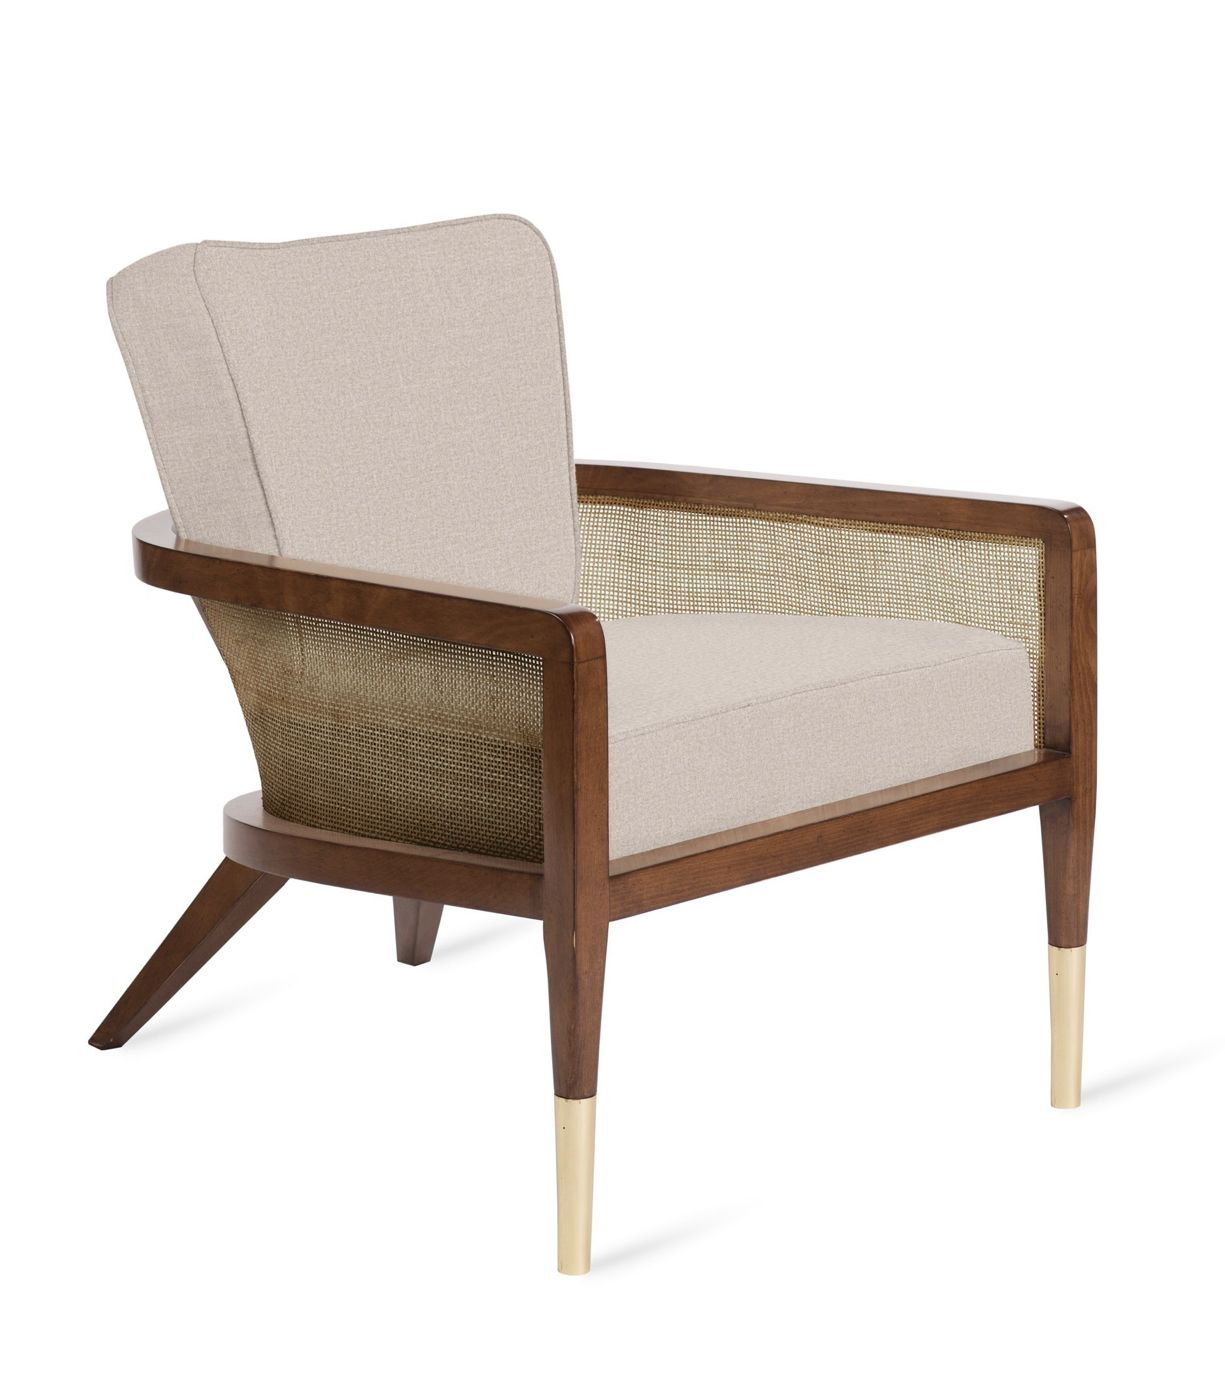 Tracy davis urbandwellings dowelfurniture grant lounge chair